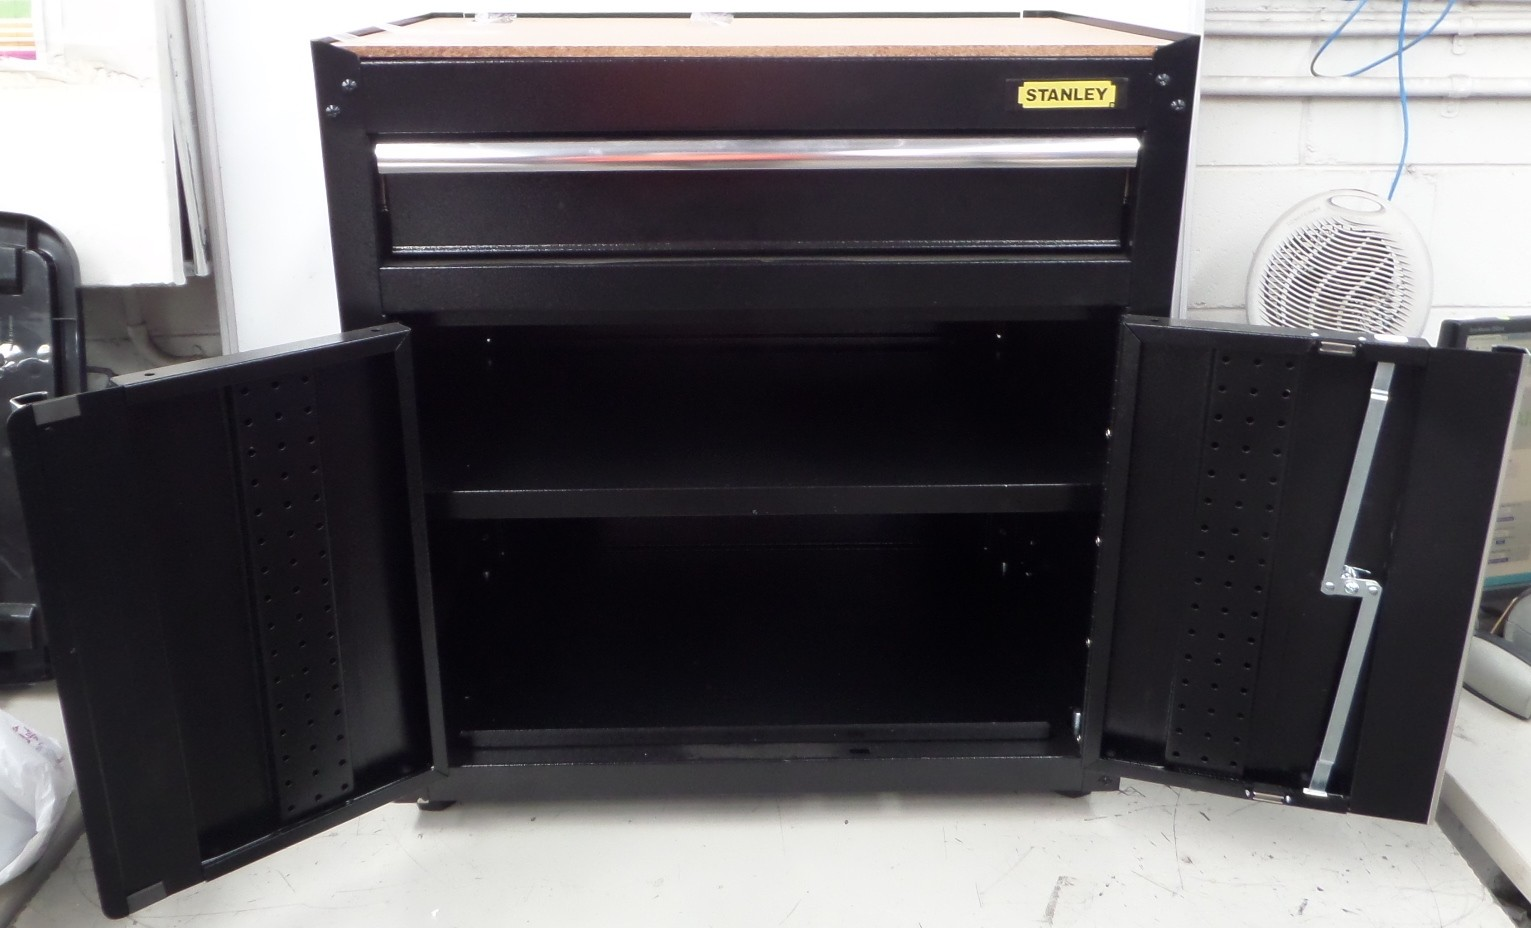 Stanley work station cabinet brand lot 817362 allbids for Auctions for kitchen cabinets